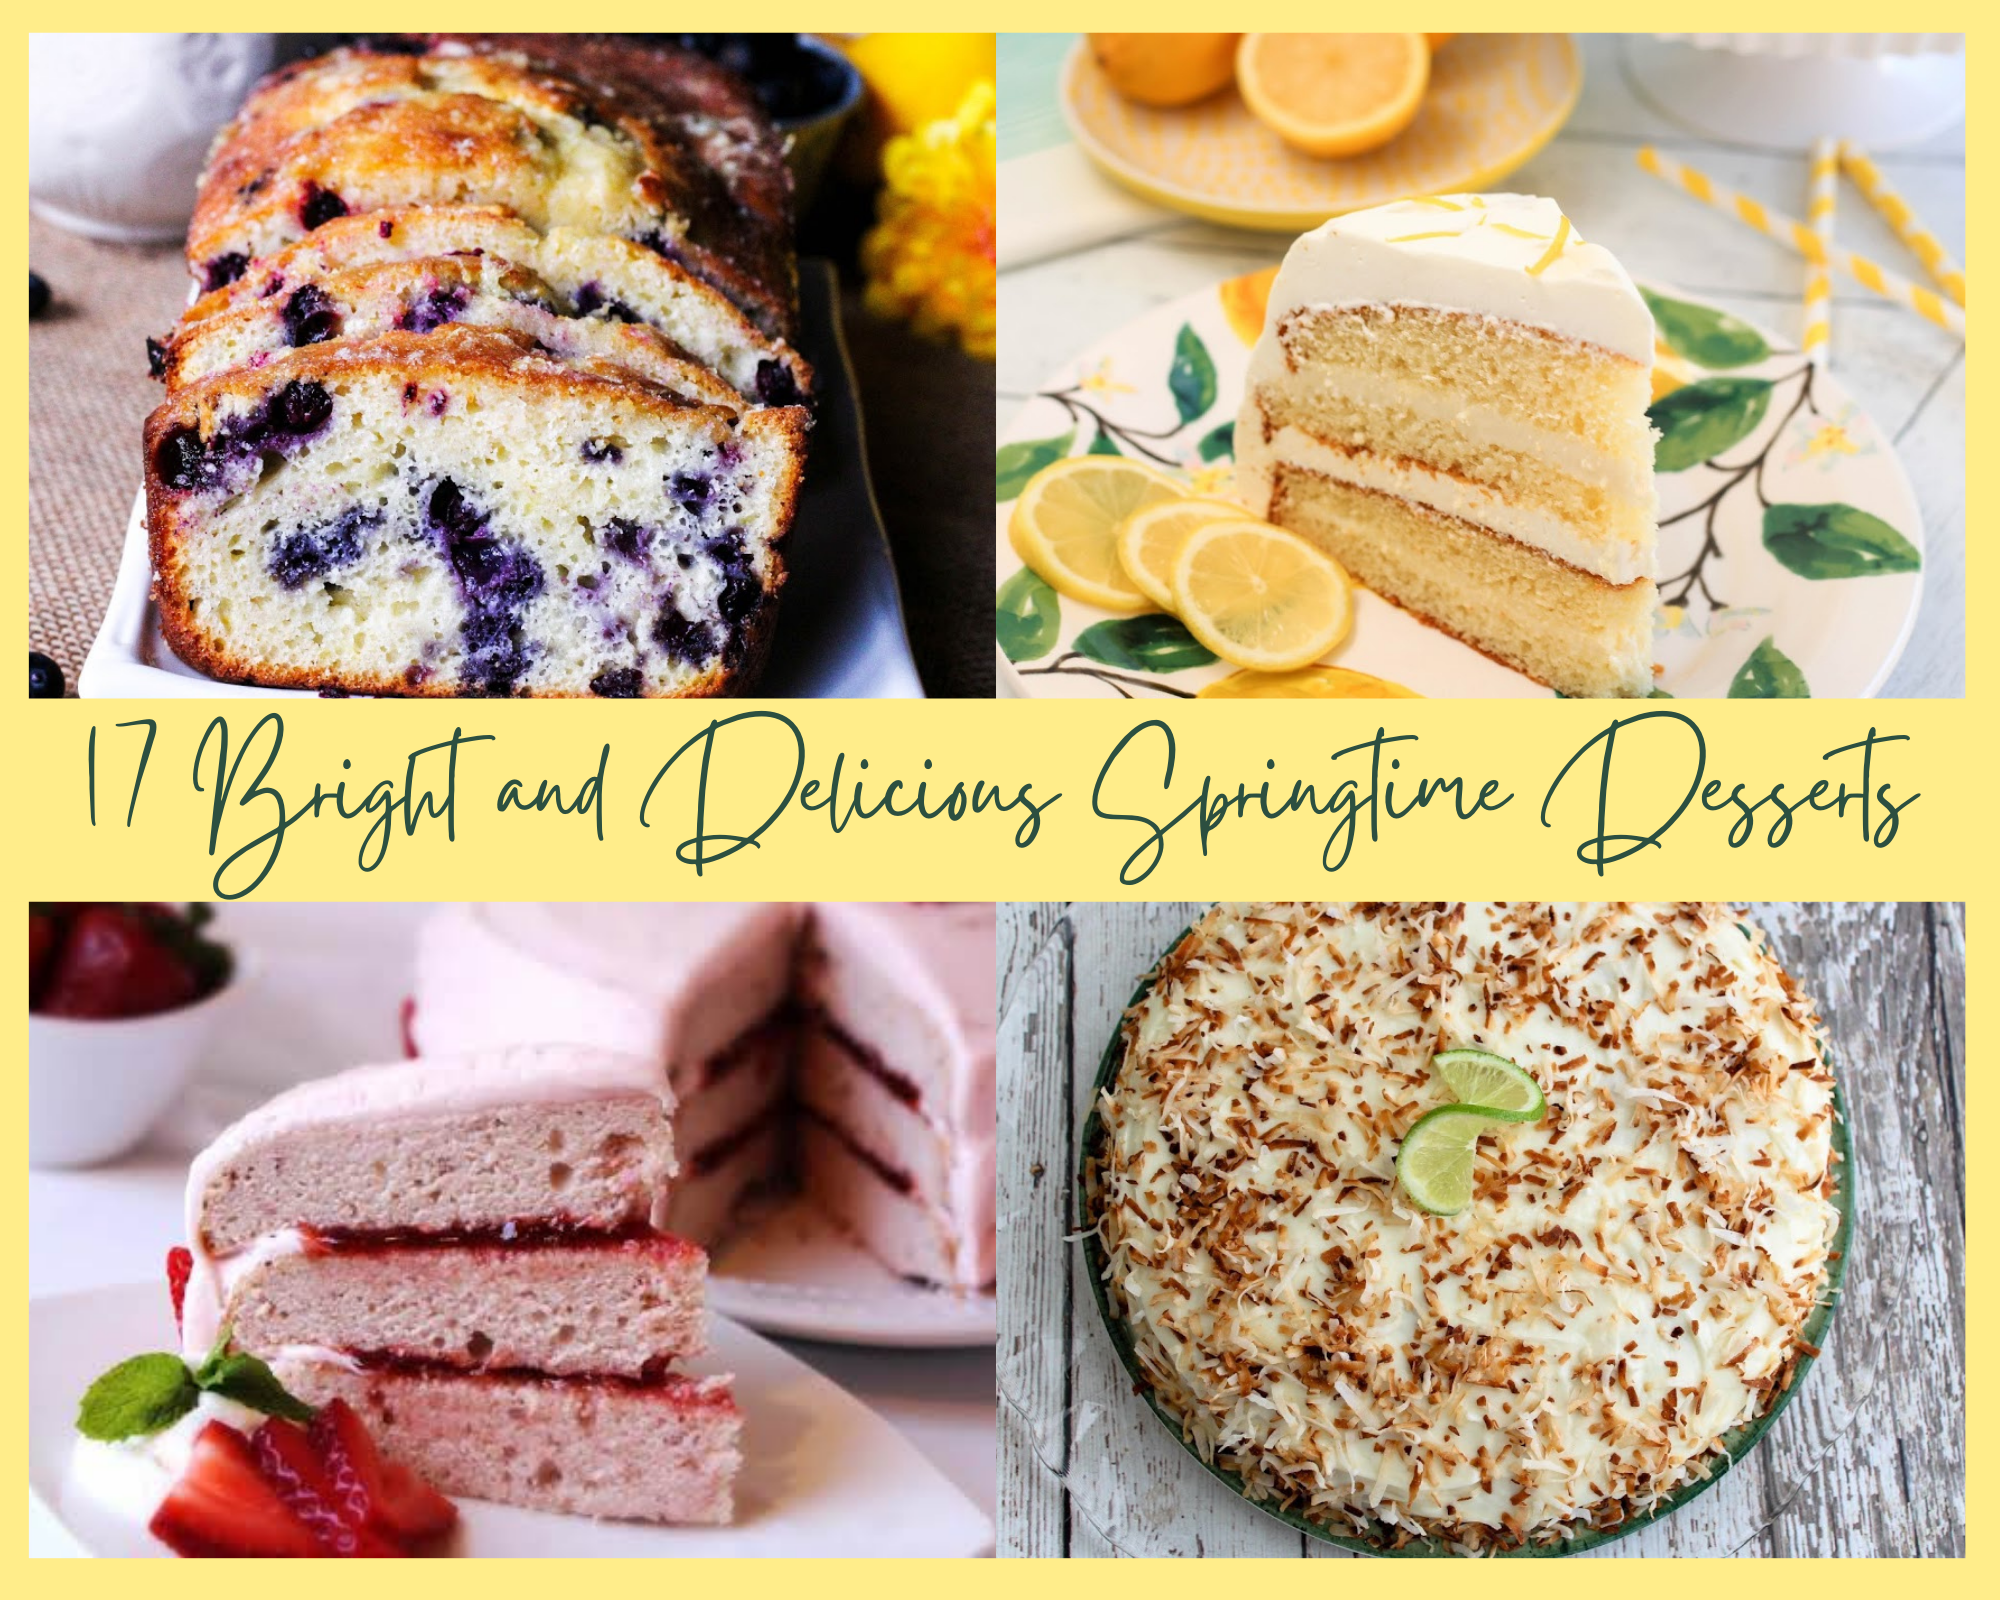 Lemon blueberry bread, strawberry cake, coconut cake, lemon icebox cake